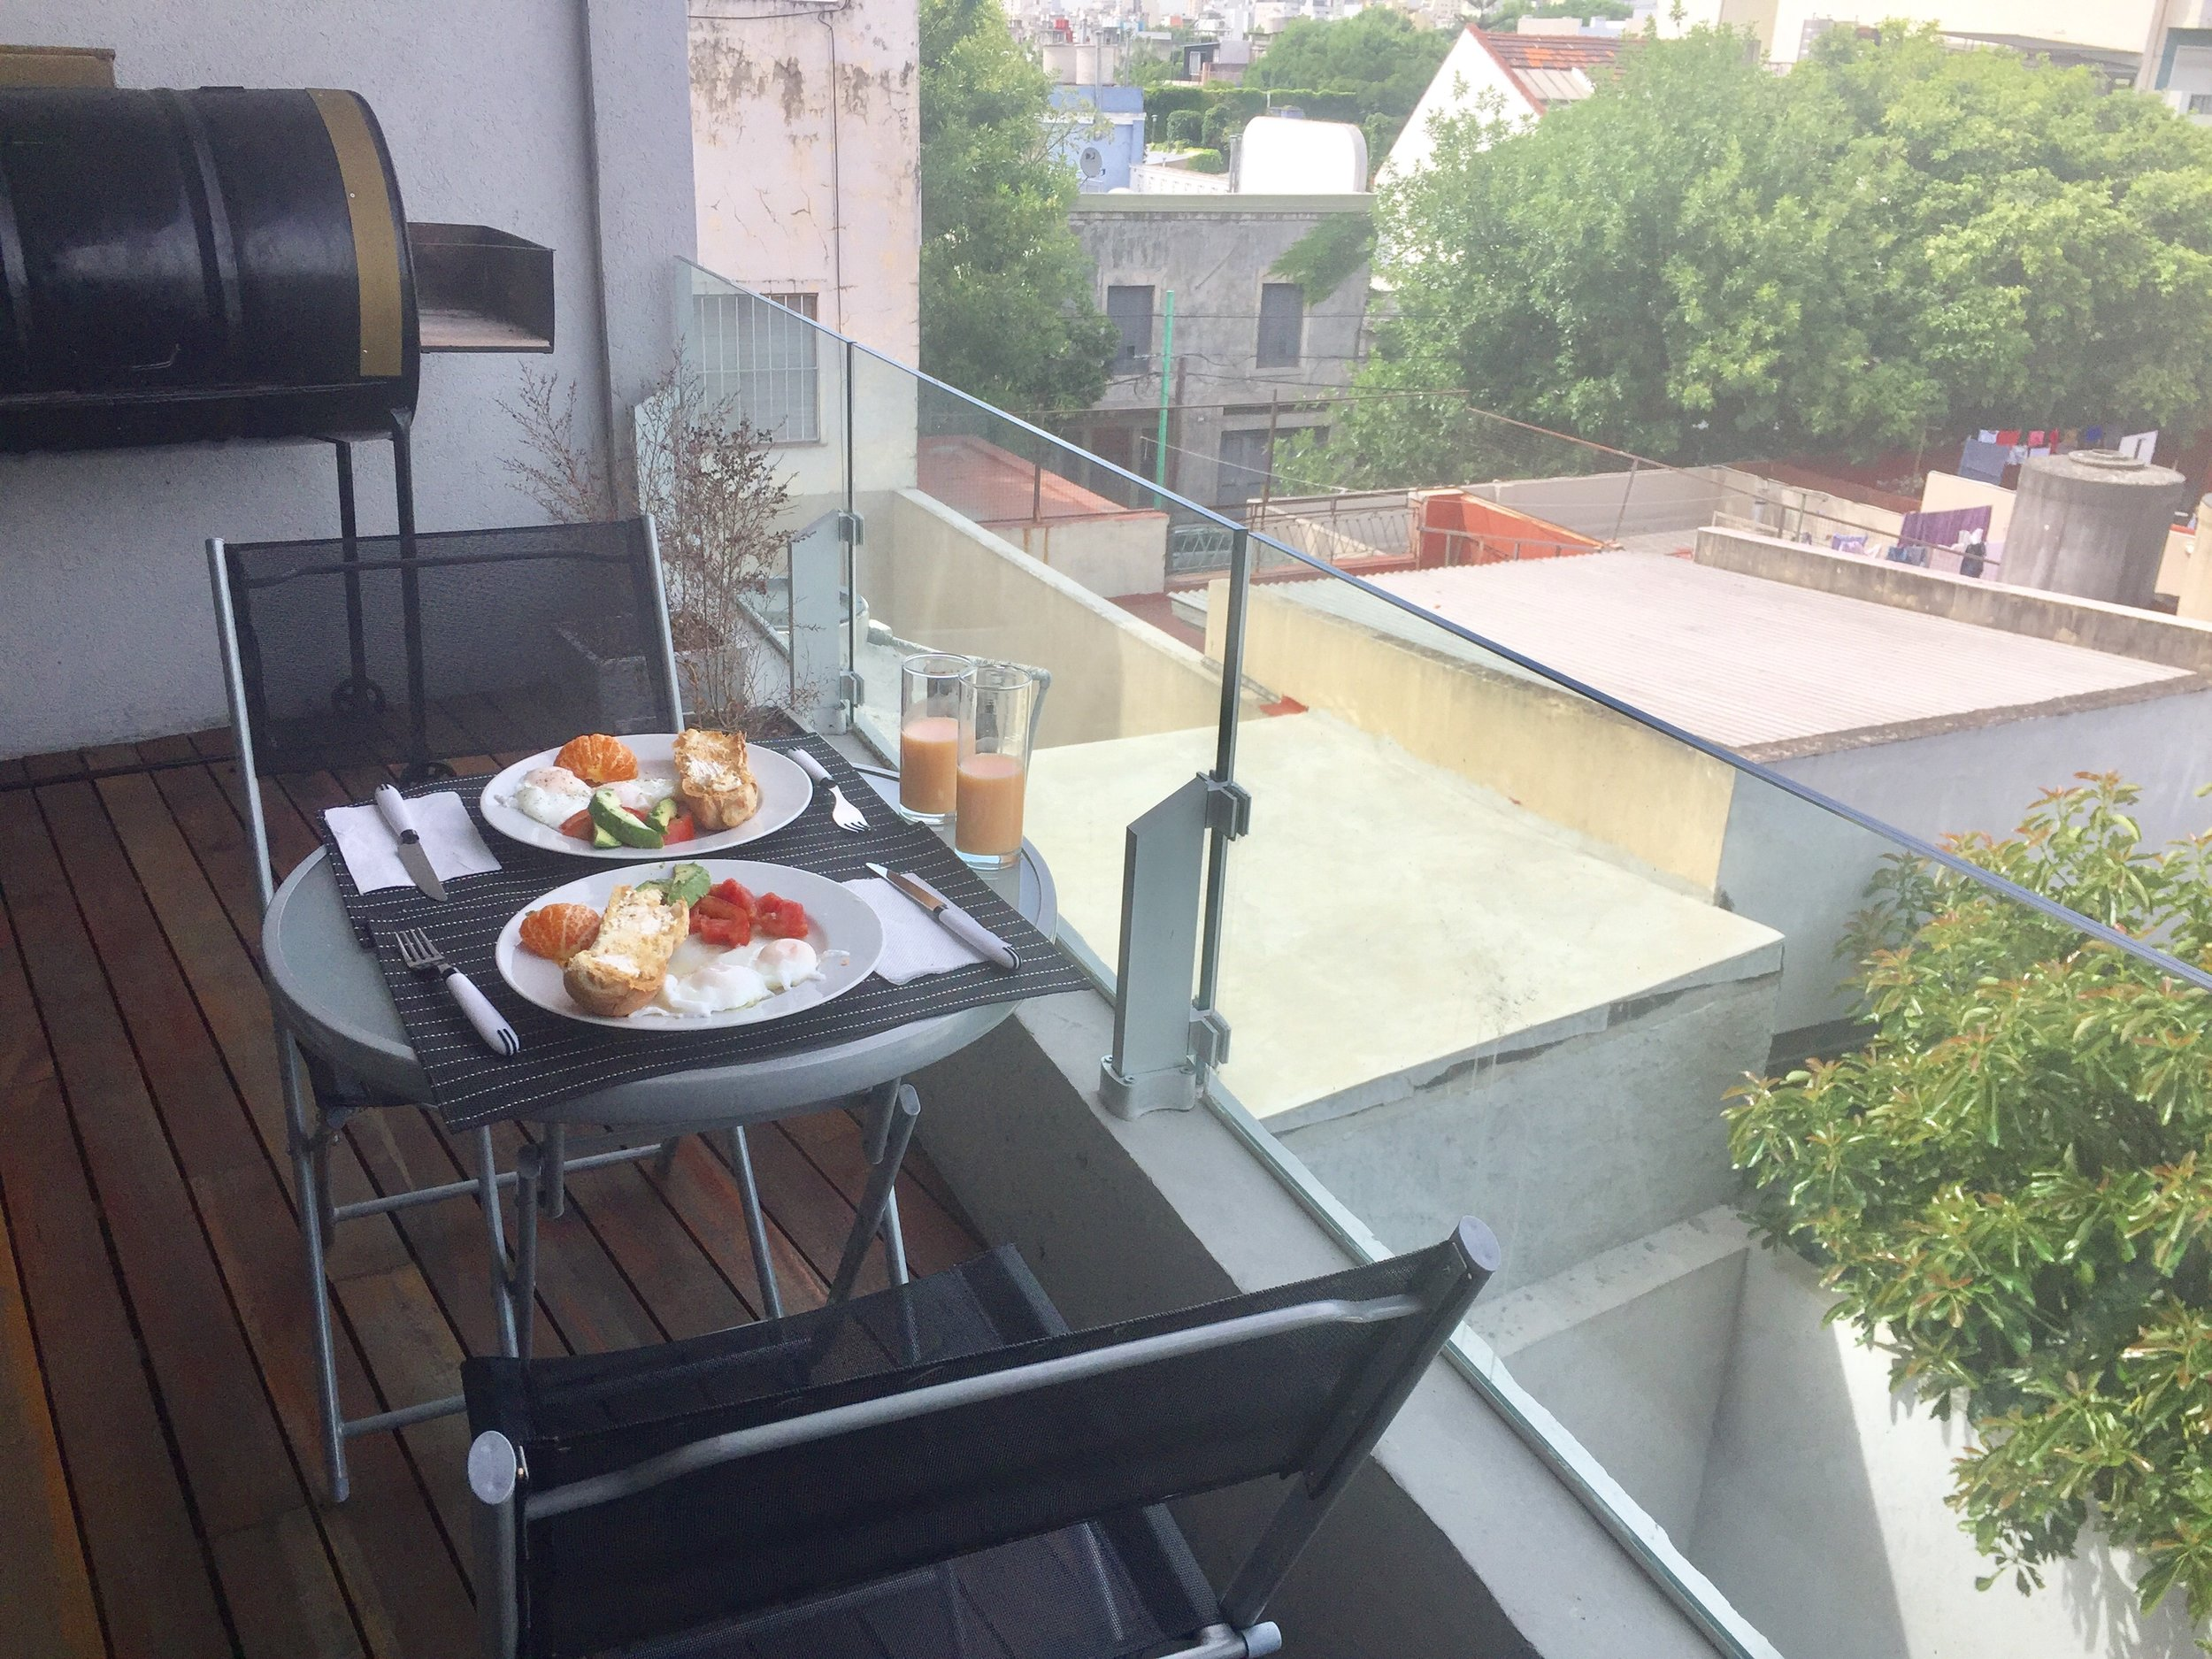 Breakfast on the balcony of our Airbnb